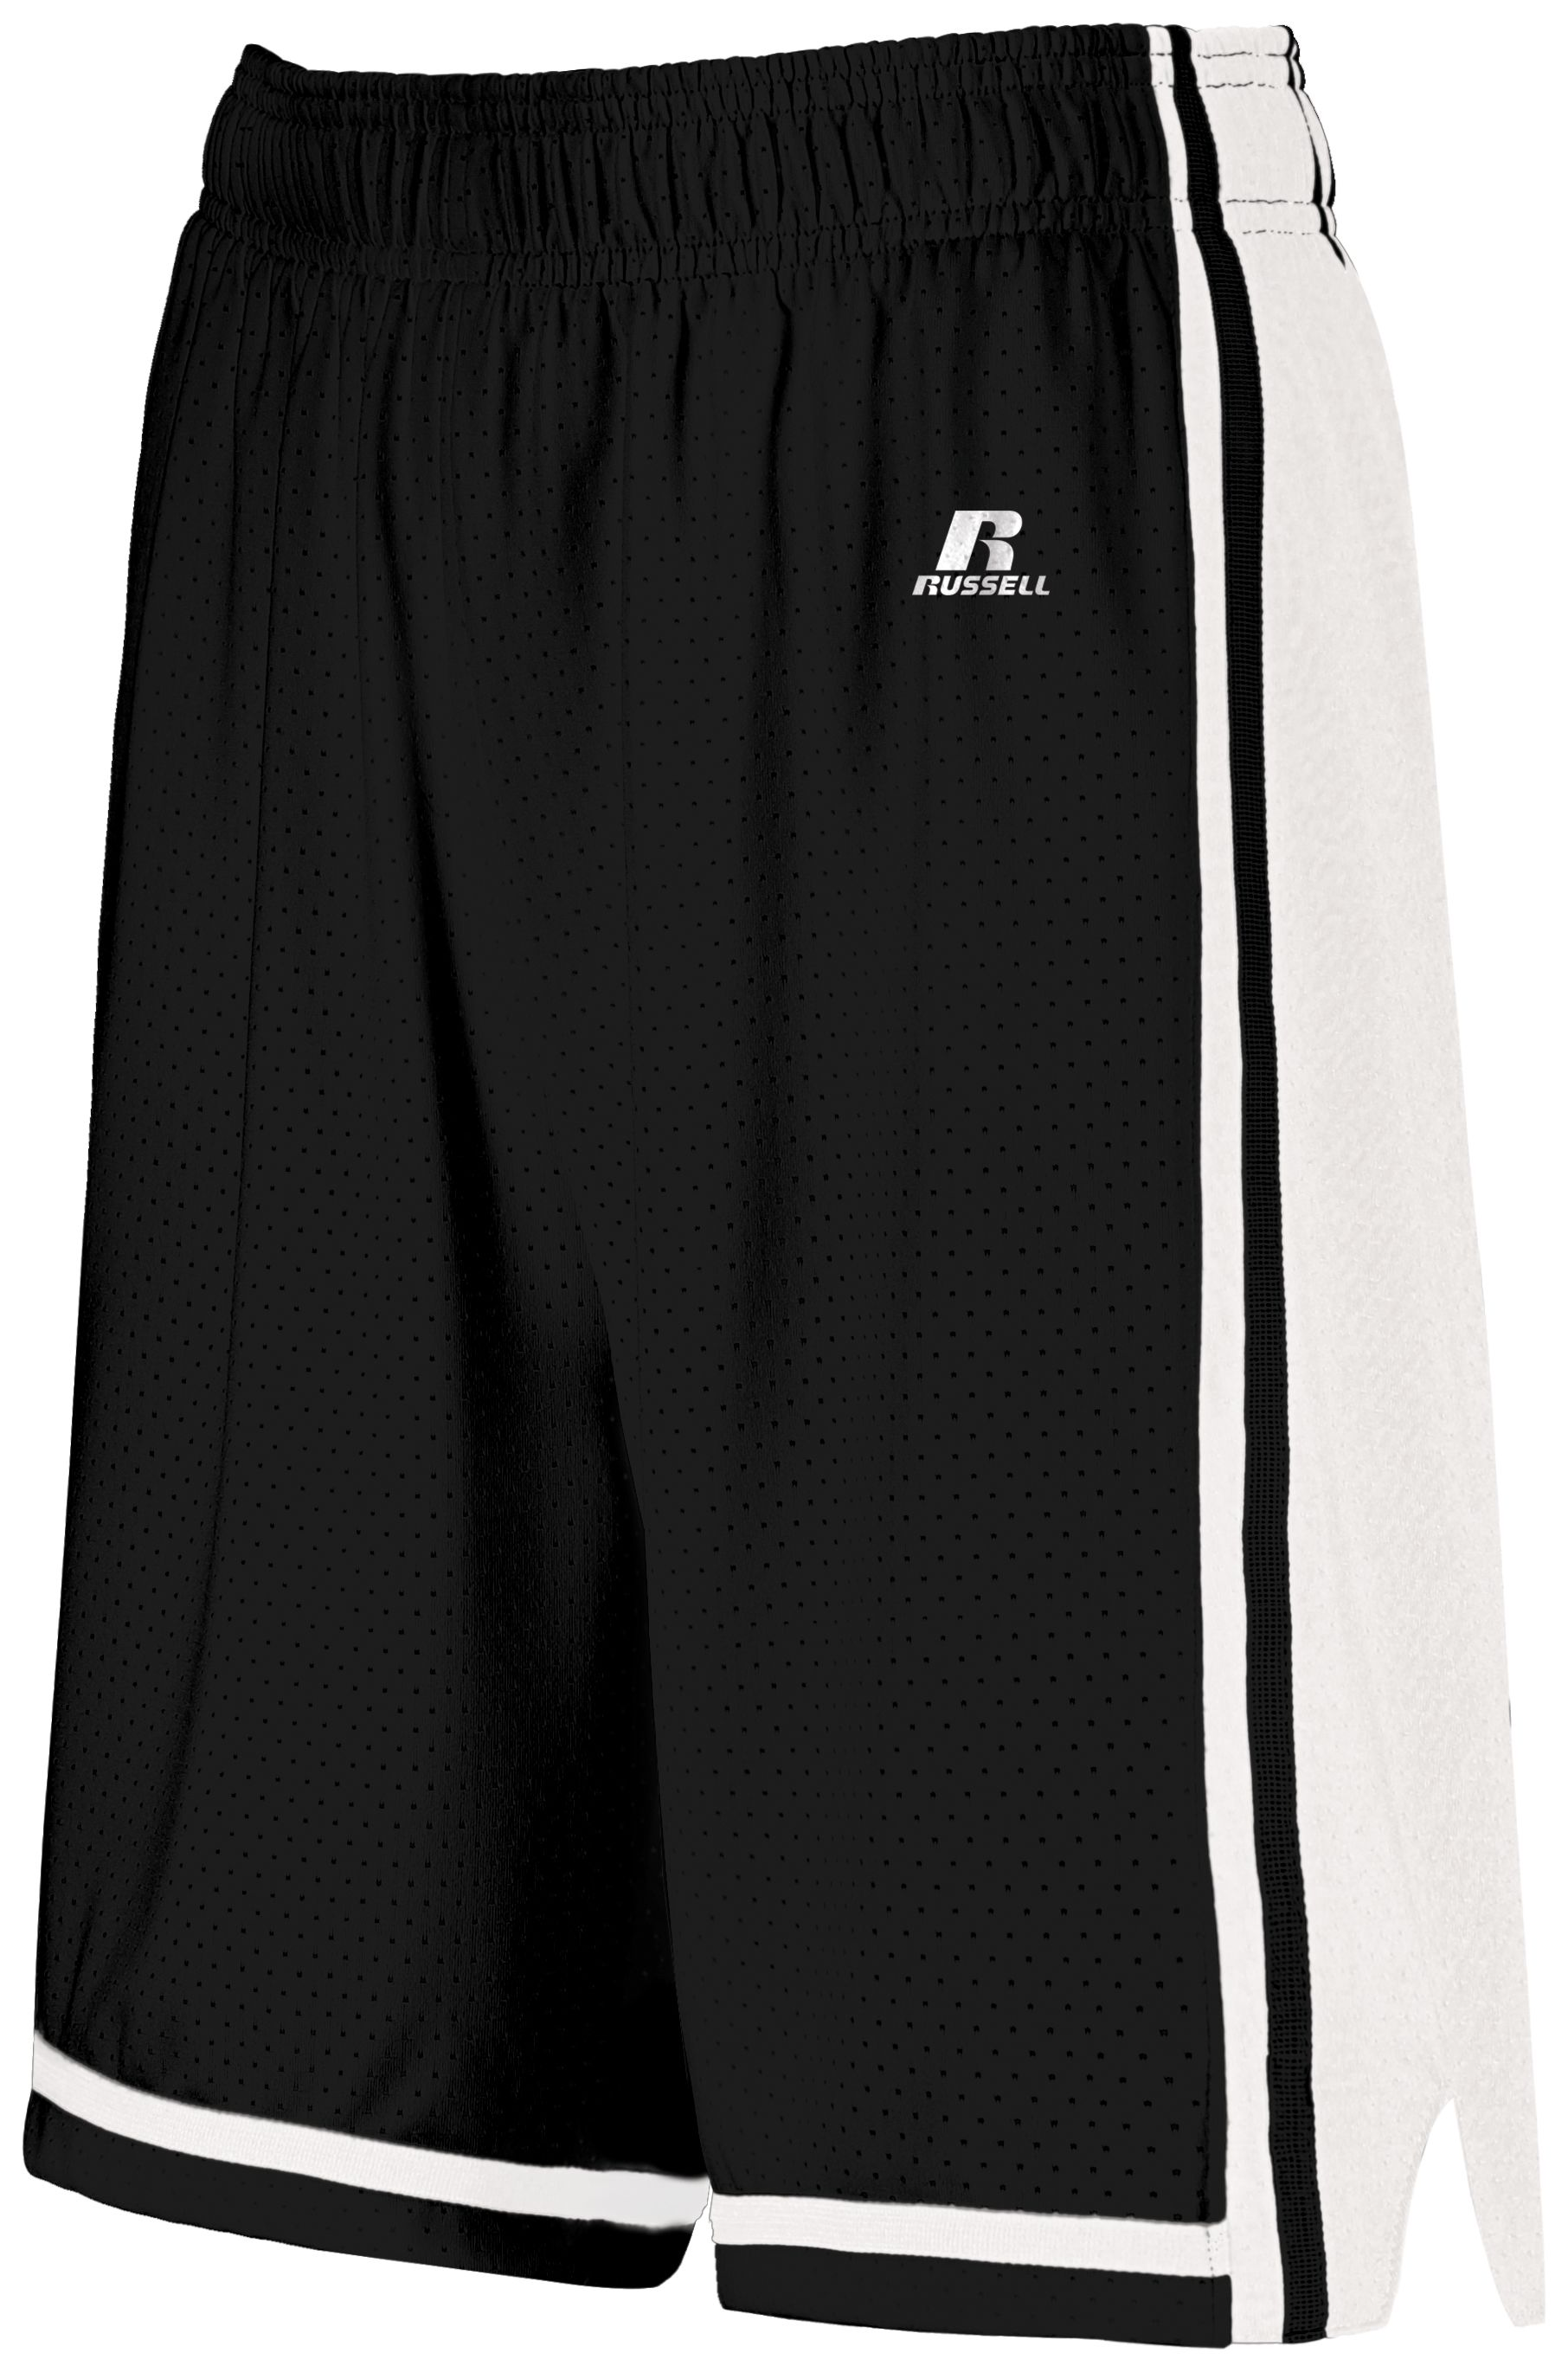 Ladies Legacy Basketball Shorts - Black/white